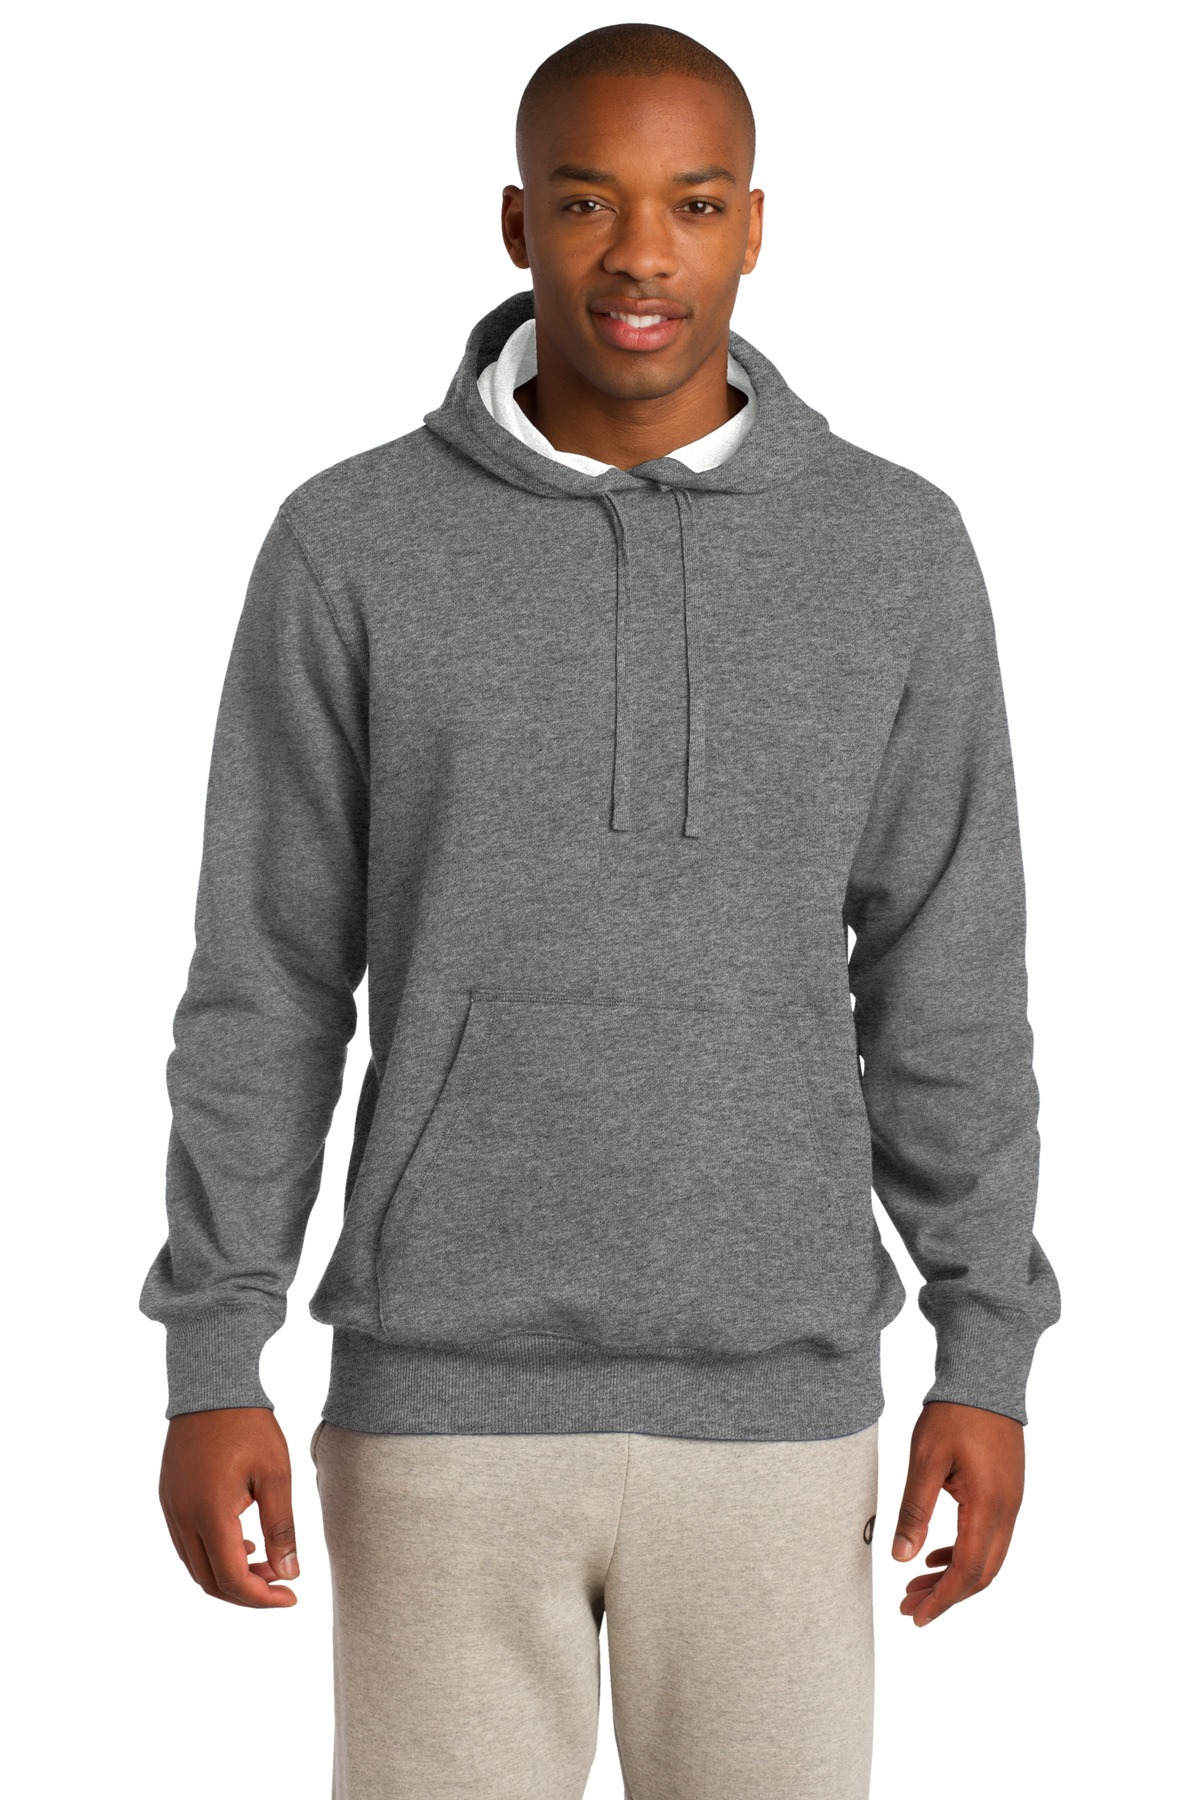 Sport-Tek Tall Pullover Hooded Sweatshirt Mens Tall Hoodie Sweater ...